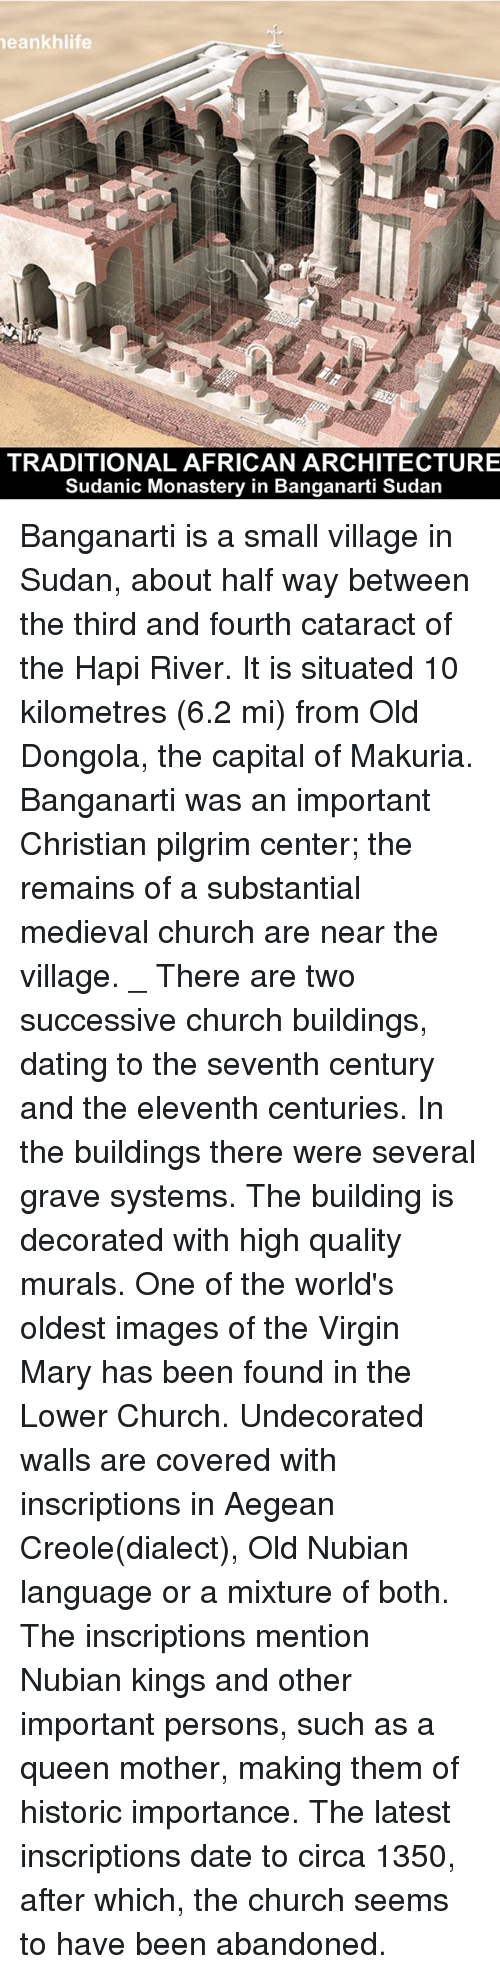 dongola christian singles The arab accounts of the invasion of 652 only make reference to a single state based at dongola political relations between makuria and christian ethiopia to.